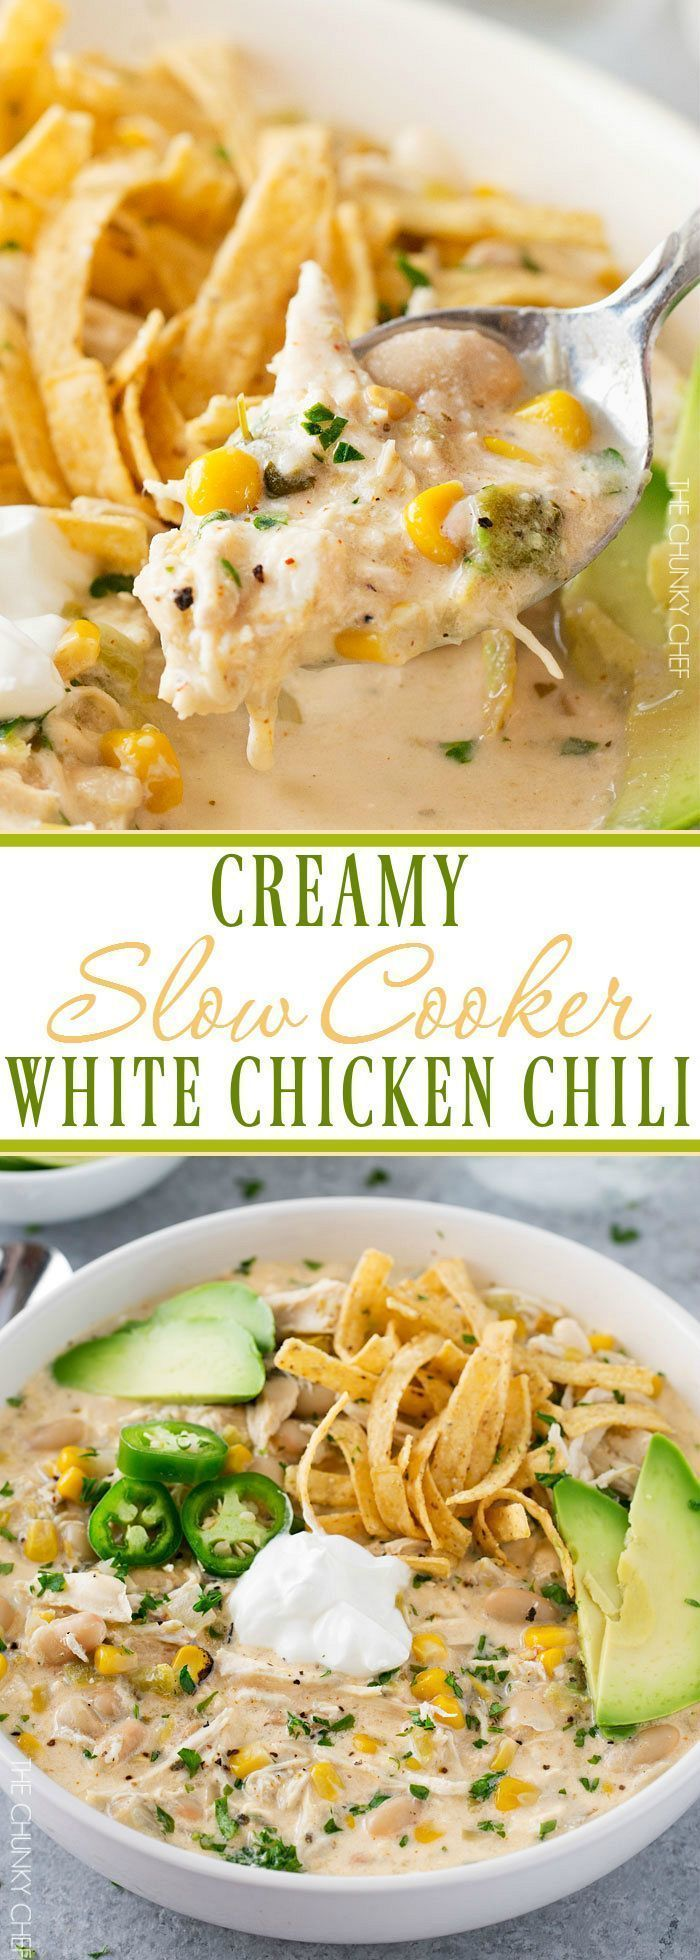 Slow Cooker Creamy White Chicken Chili | This creamy white chicken chili is made easy in the slow cooker, and has just the right amount of spice to warm up your night! | thechunkychef.com